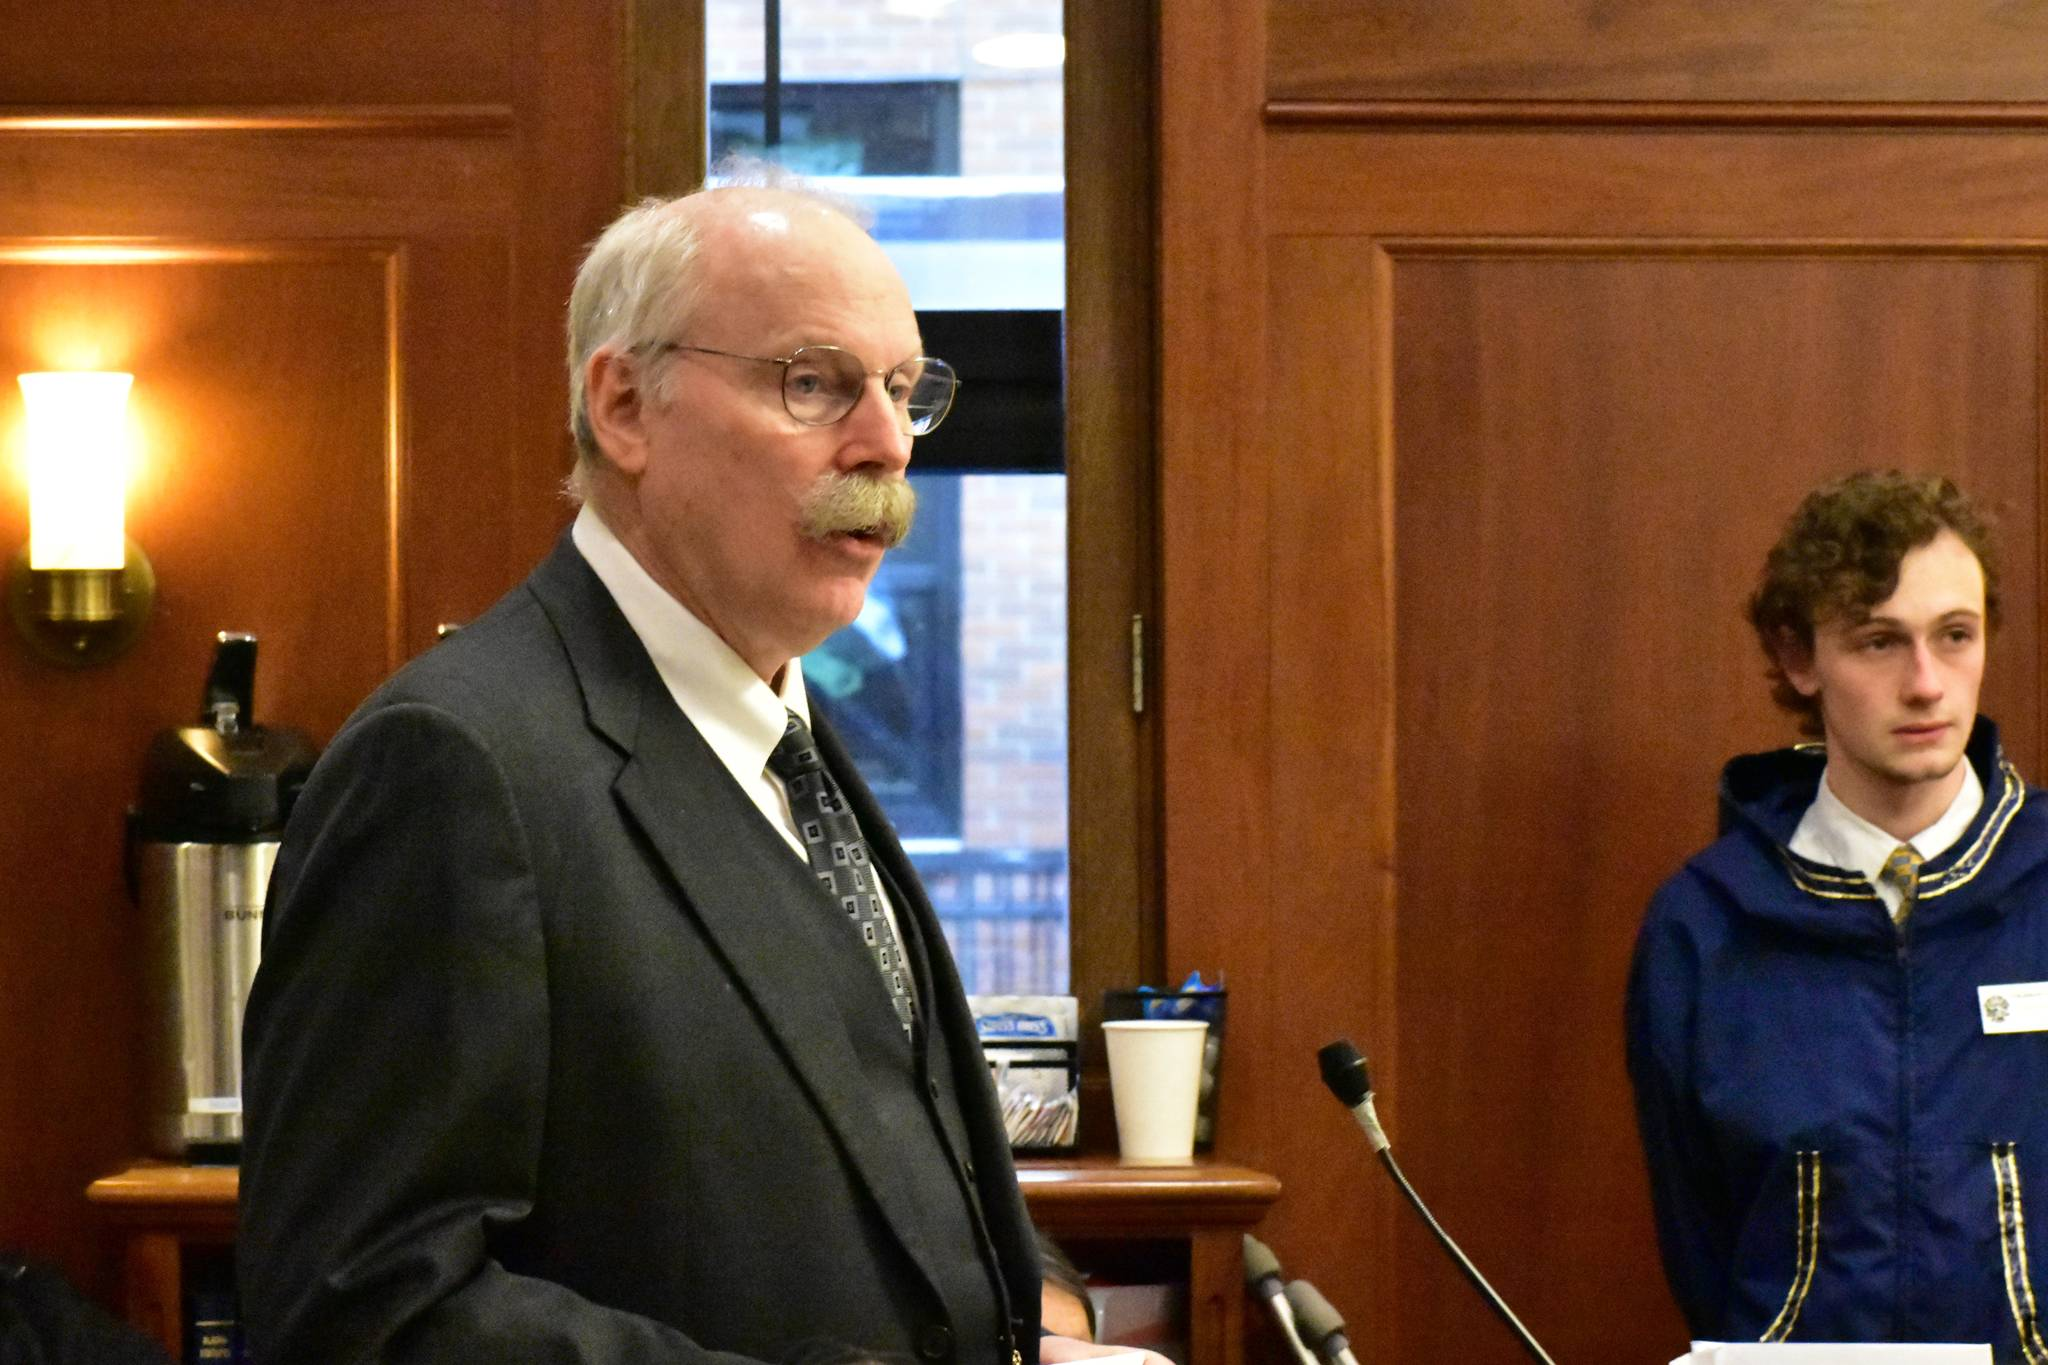 Sen. Bert Stedman, R-Sitka, speaks in support of overriding Gov. Mike Dunleavy's vetoes during a joint session on Friday, Jan. 24, 2020. (Peter Segall | Juneau Empire)